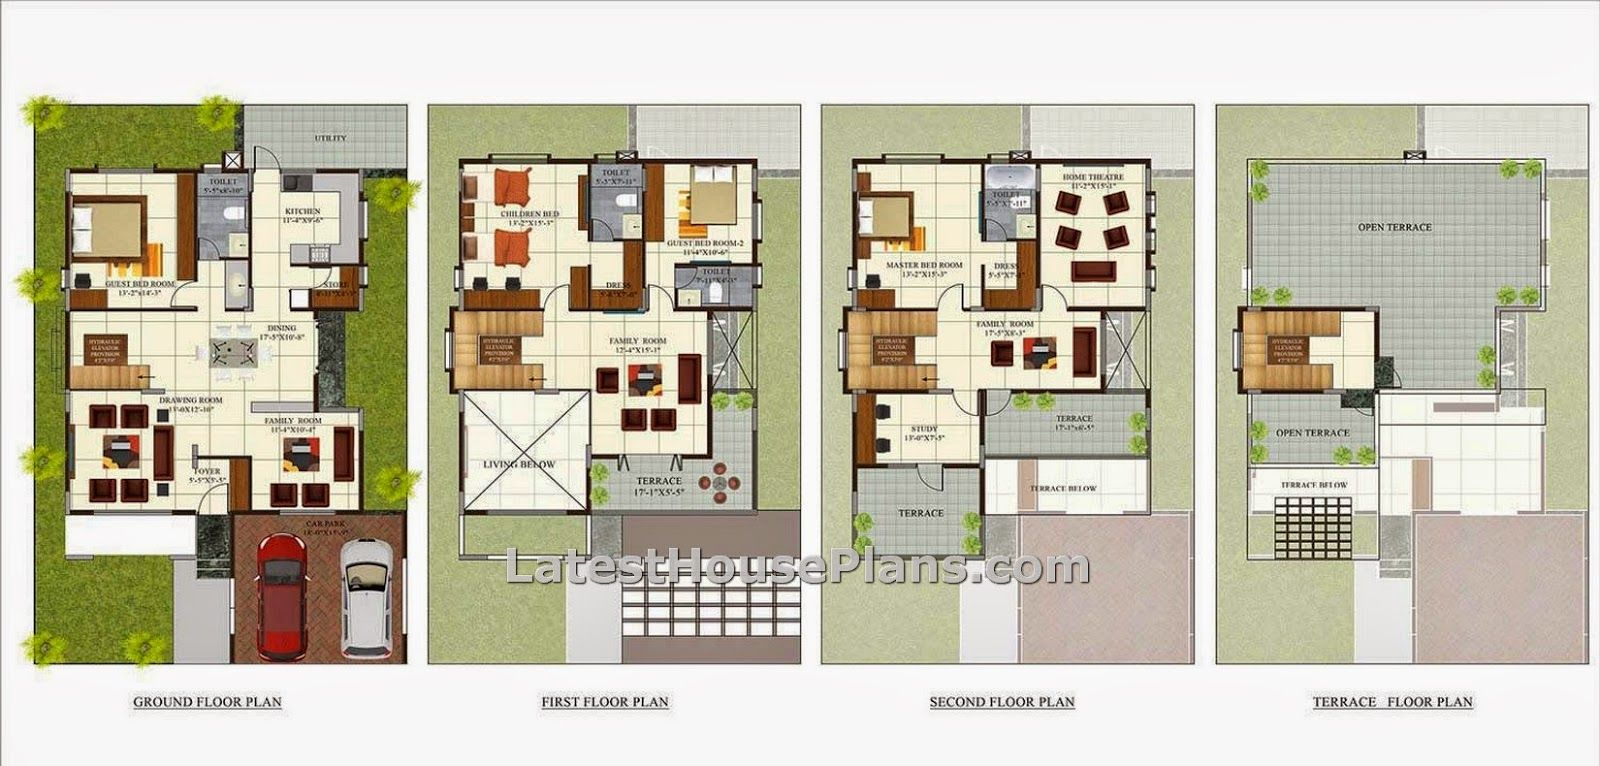 Superieur 3 Bedroom Floor Plans India: Find The Above Image For Four Floor Luxury  Villa House Plans In Bangaloreindia Above Is The Four Bedroom House Having  Two Cars ...